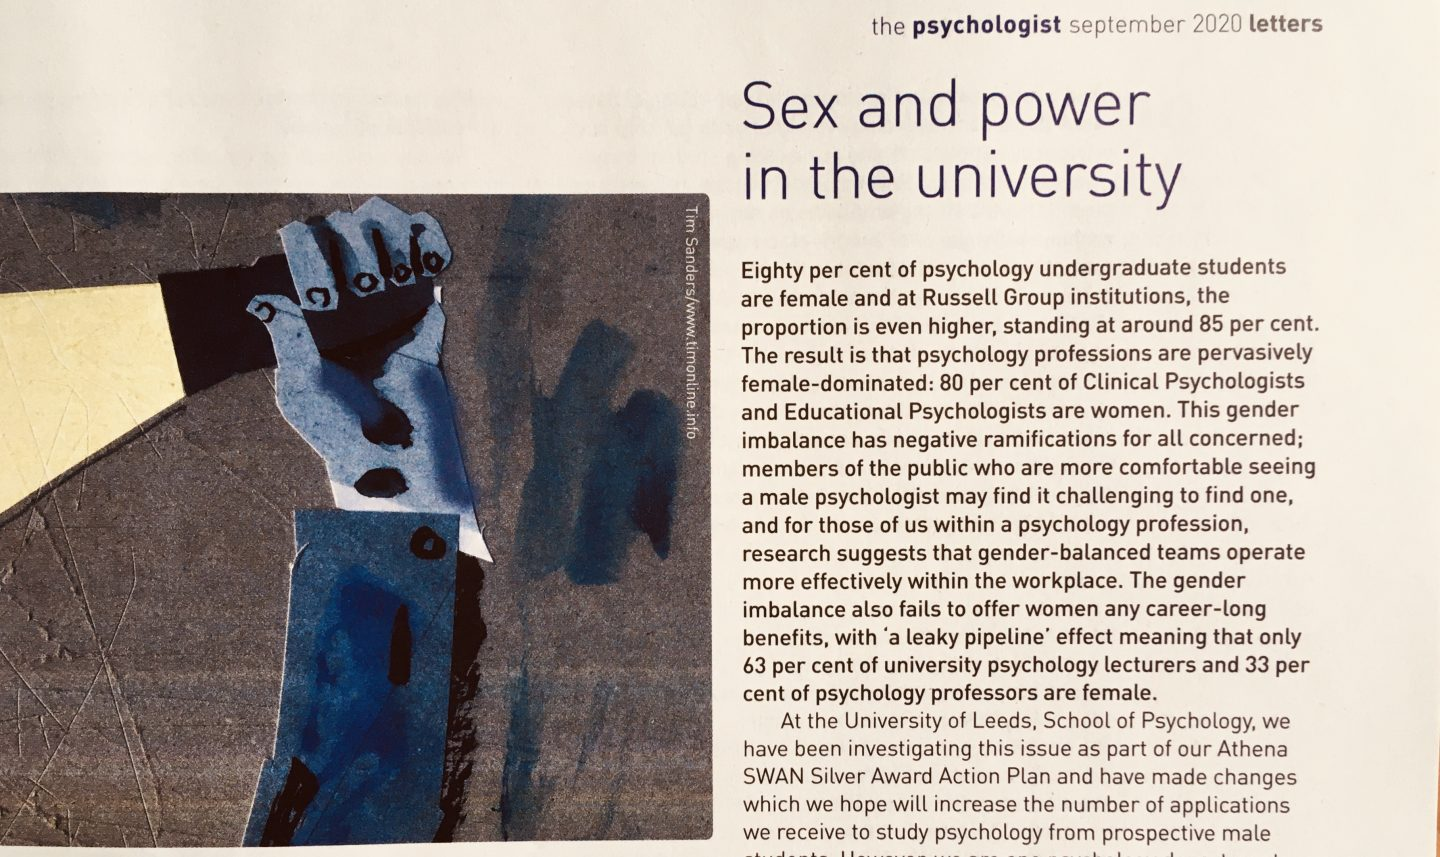 Gender and power in psychology: Our letter to the BPS